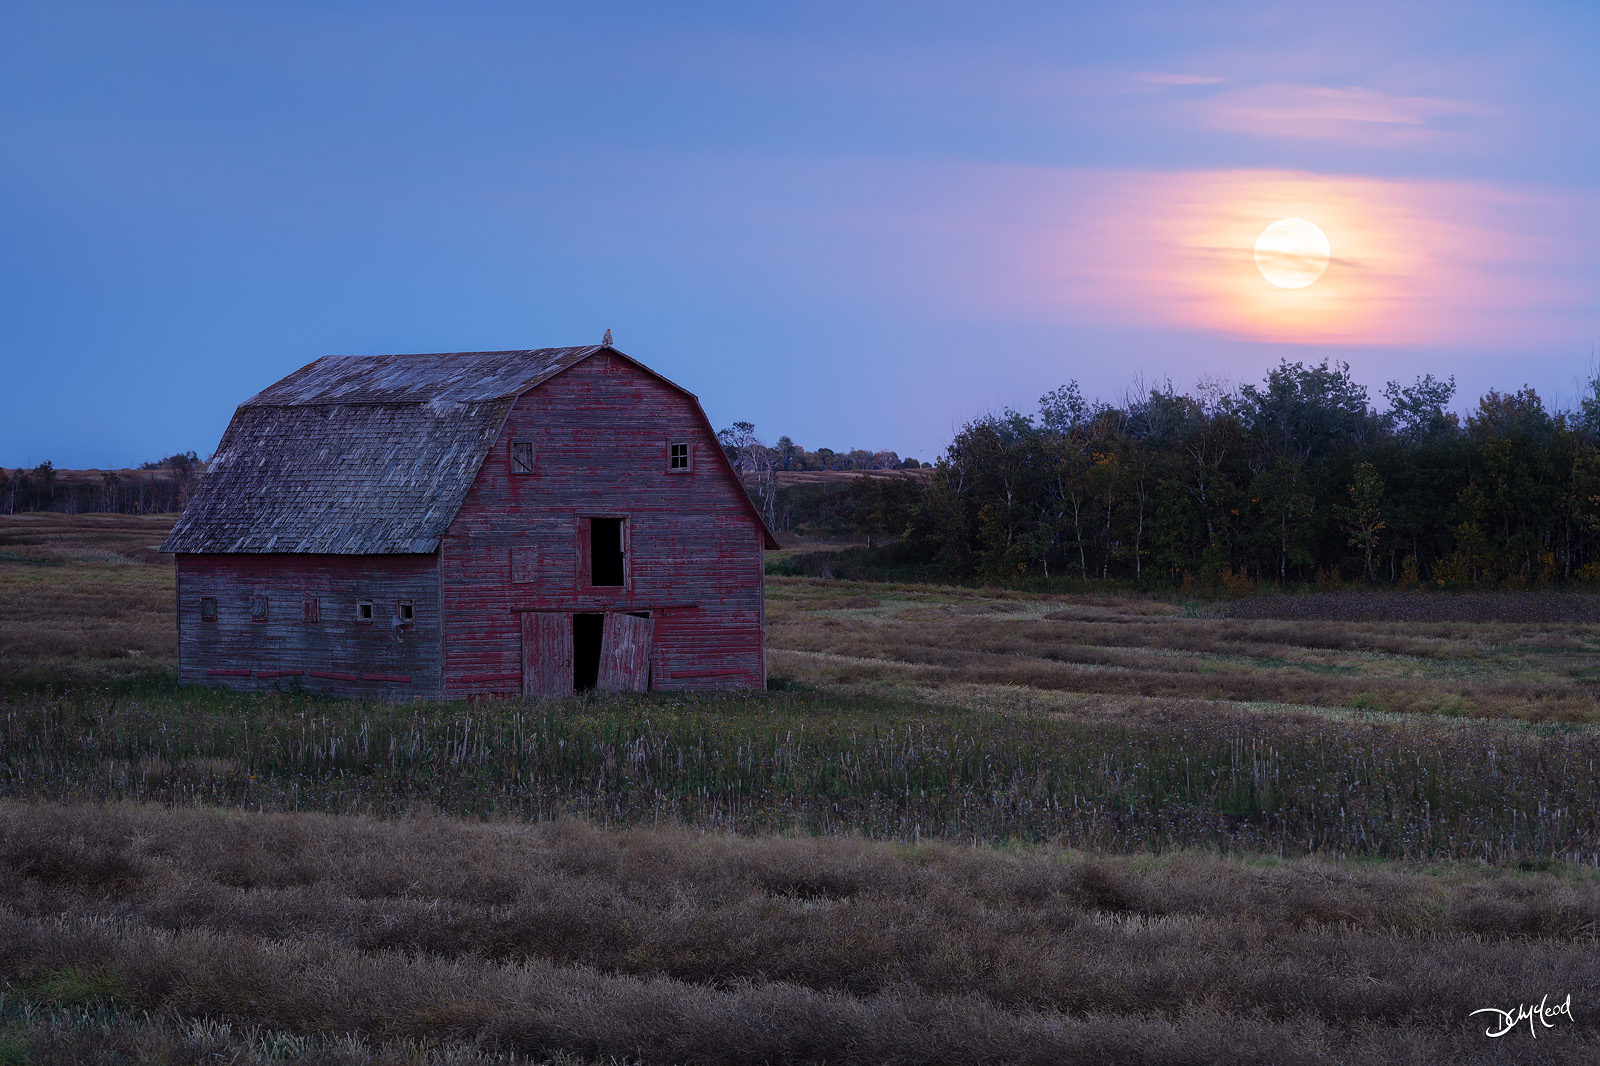 the watcher, saskatchewan, harvest moon, great horned owl, barn, photo